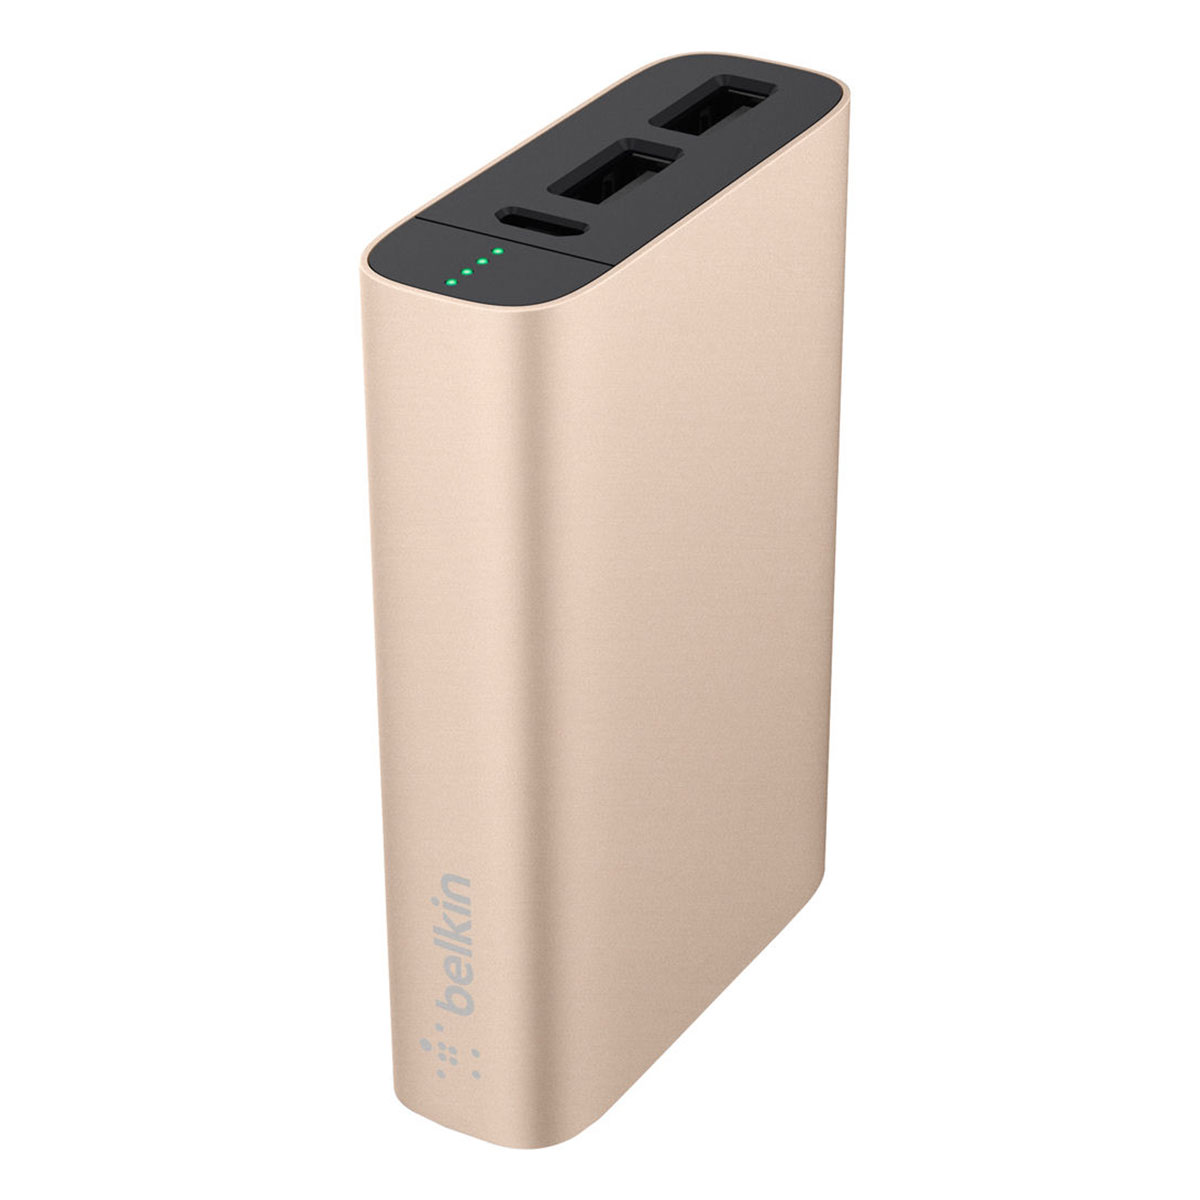 Belkin - MIXITUP Power Pack 6600MaH Battery Pack - Gold